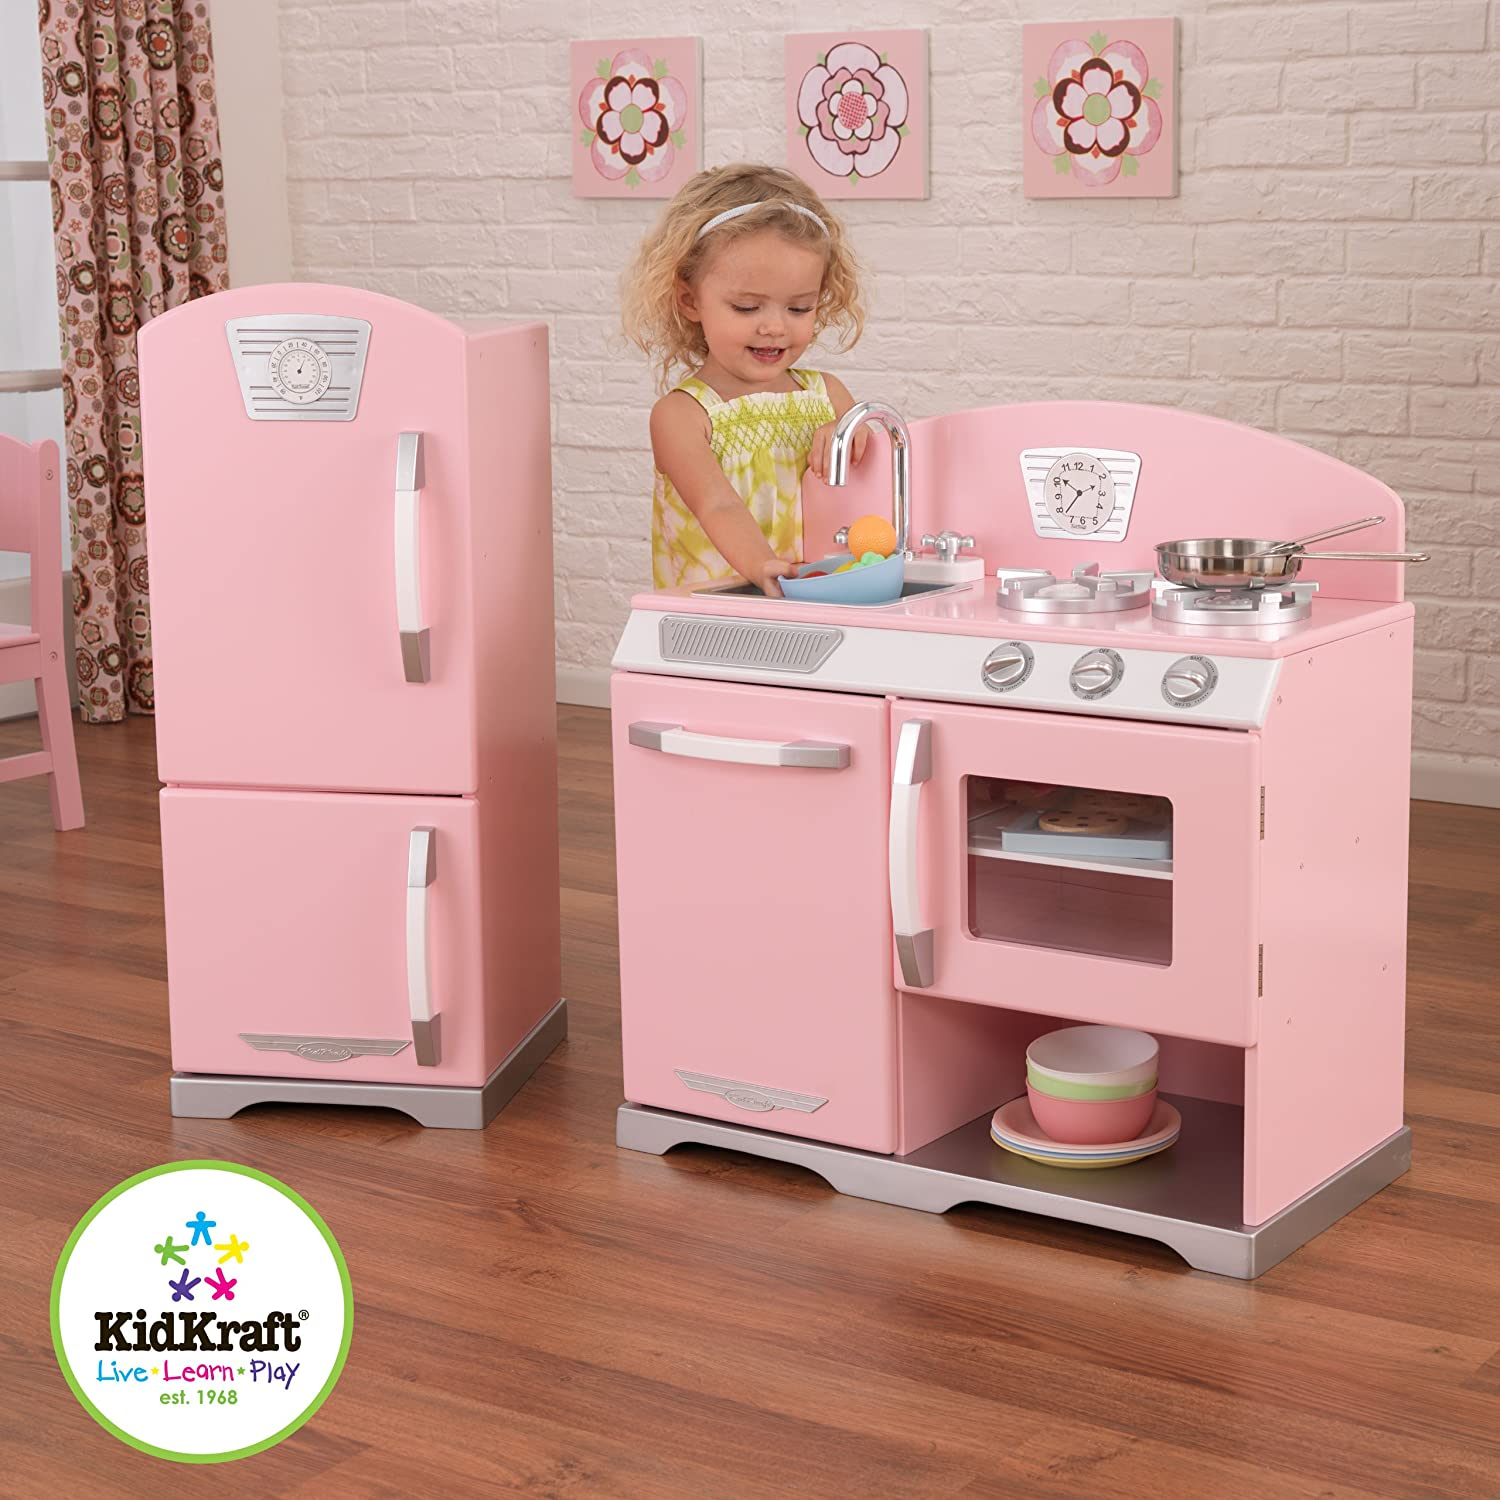 kidkraft retro kitchen and refrigerator in pink toys